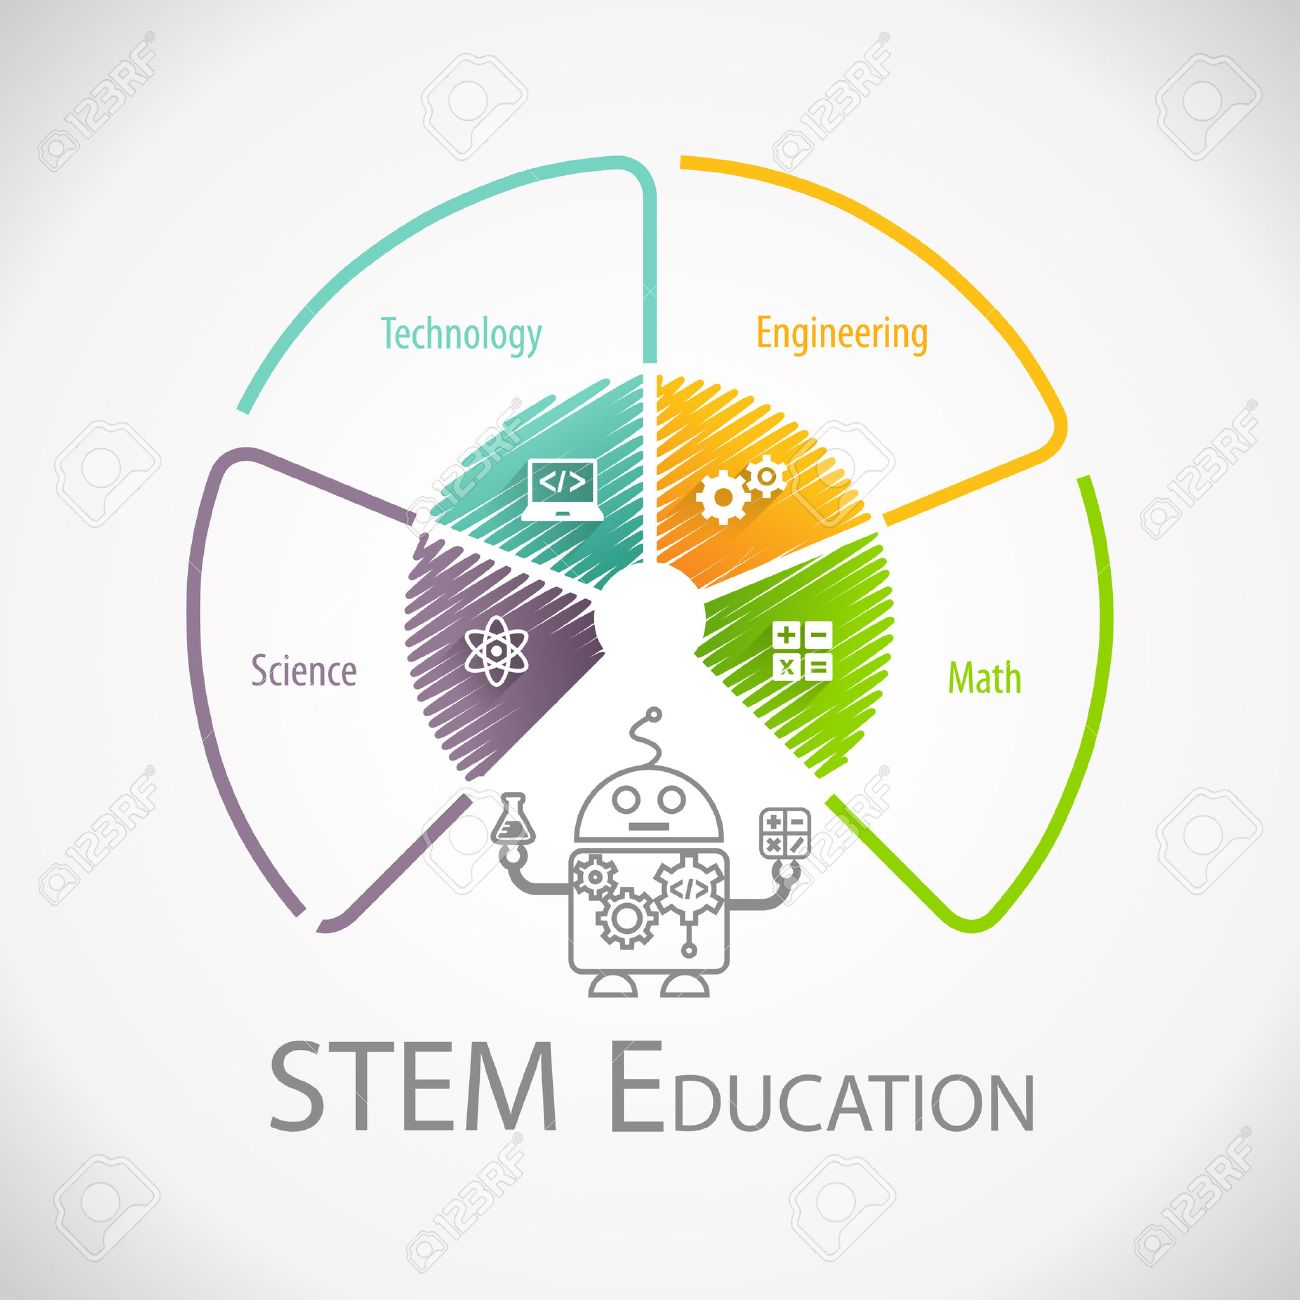 Stem education wheel science technology engineering mathematics stem education wheel science technology engineering mathematics stock photo 65230117 ccuart